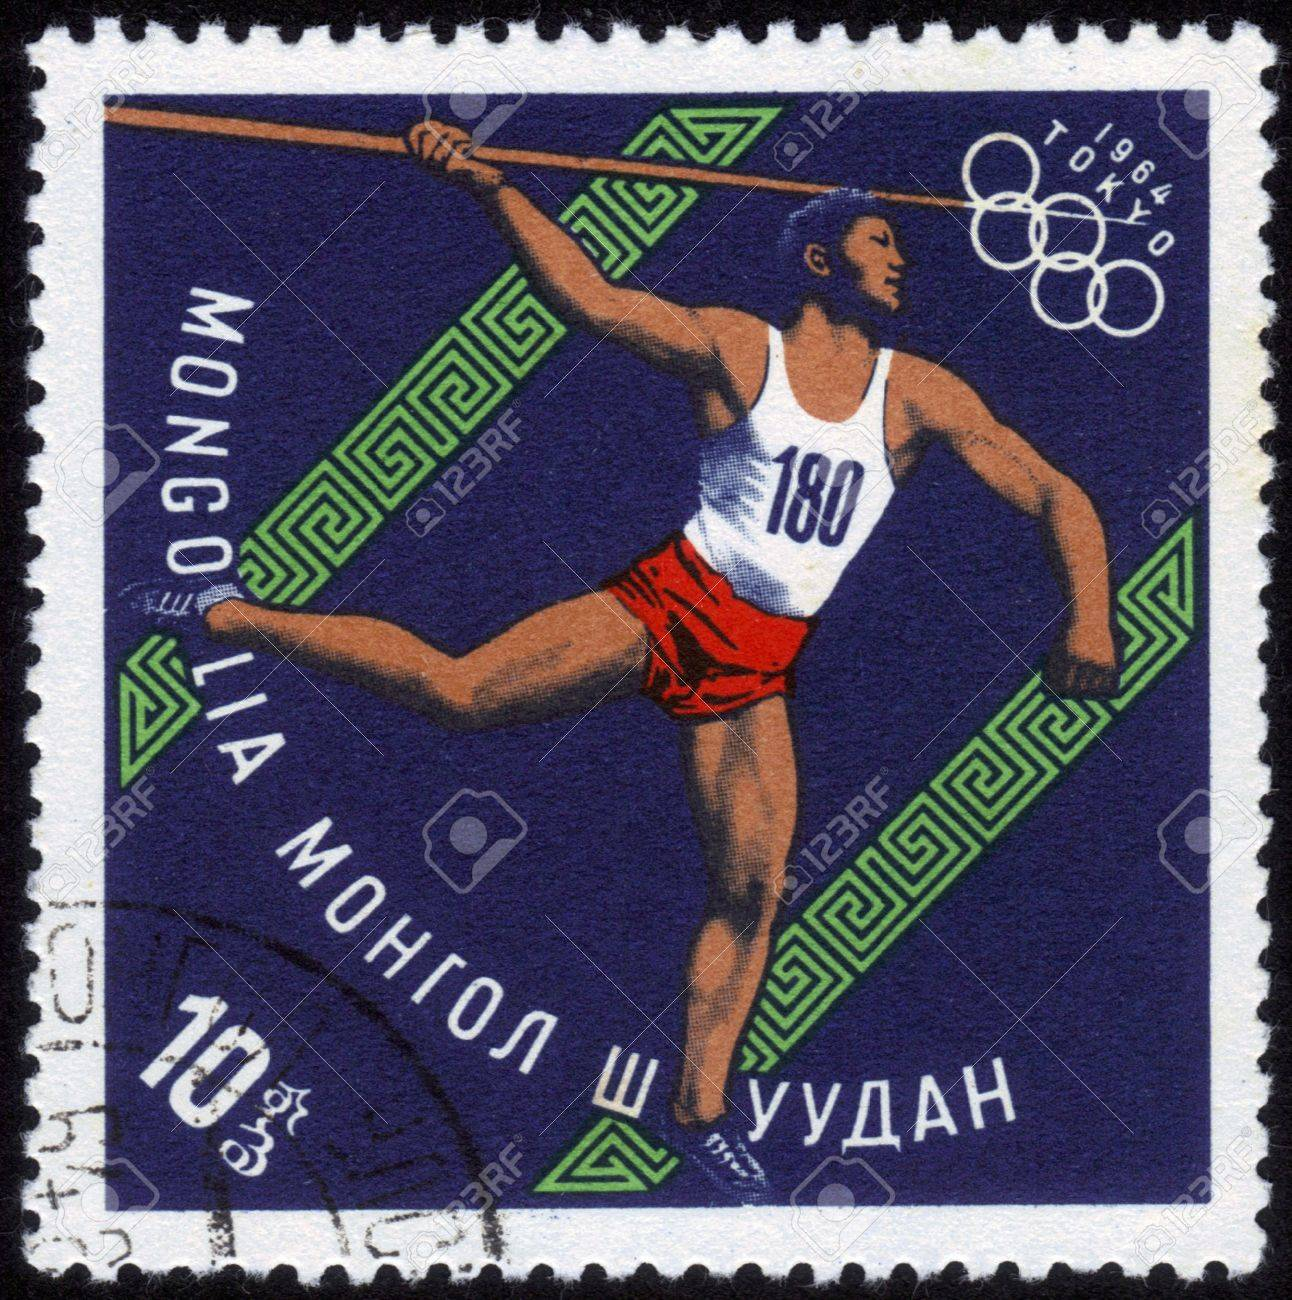 MONGOLIA - CIRCA 1964: A stamp printed in MONGOLIA shows javelin thrower with the inscription